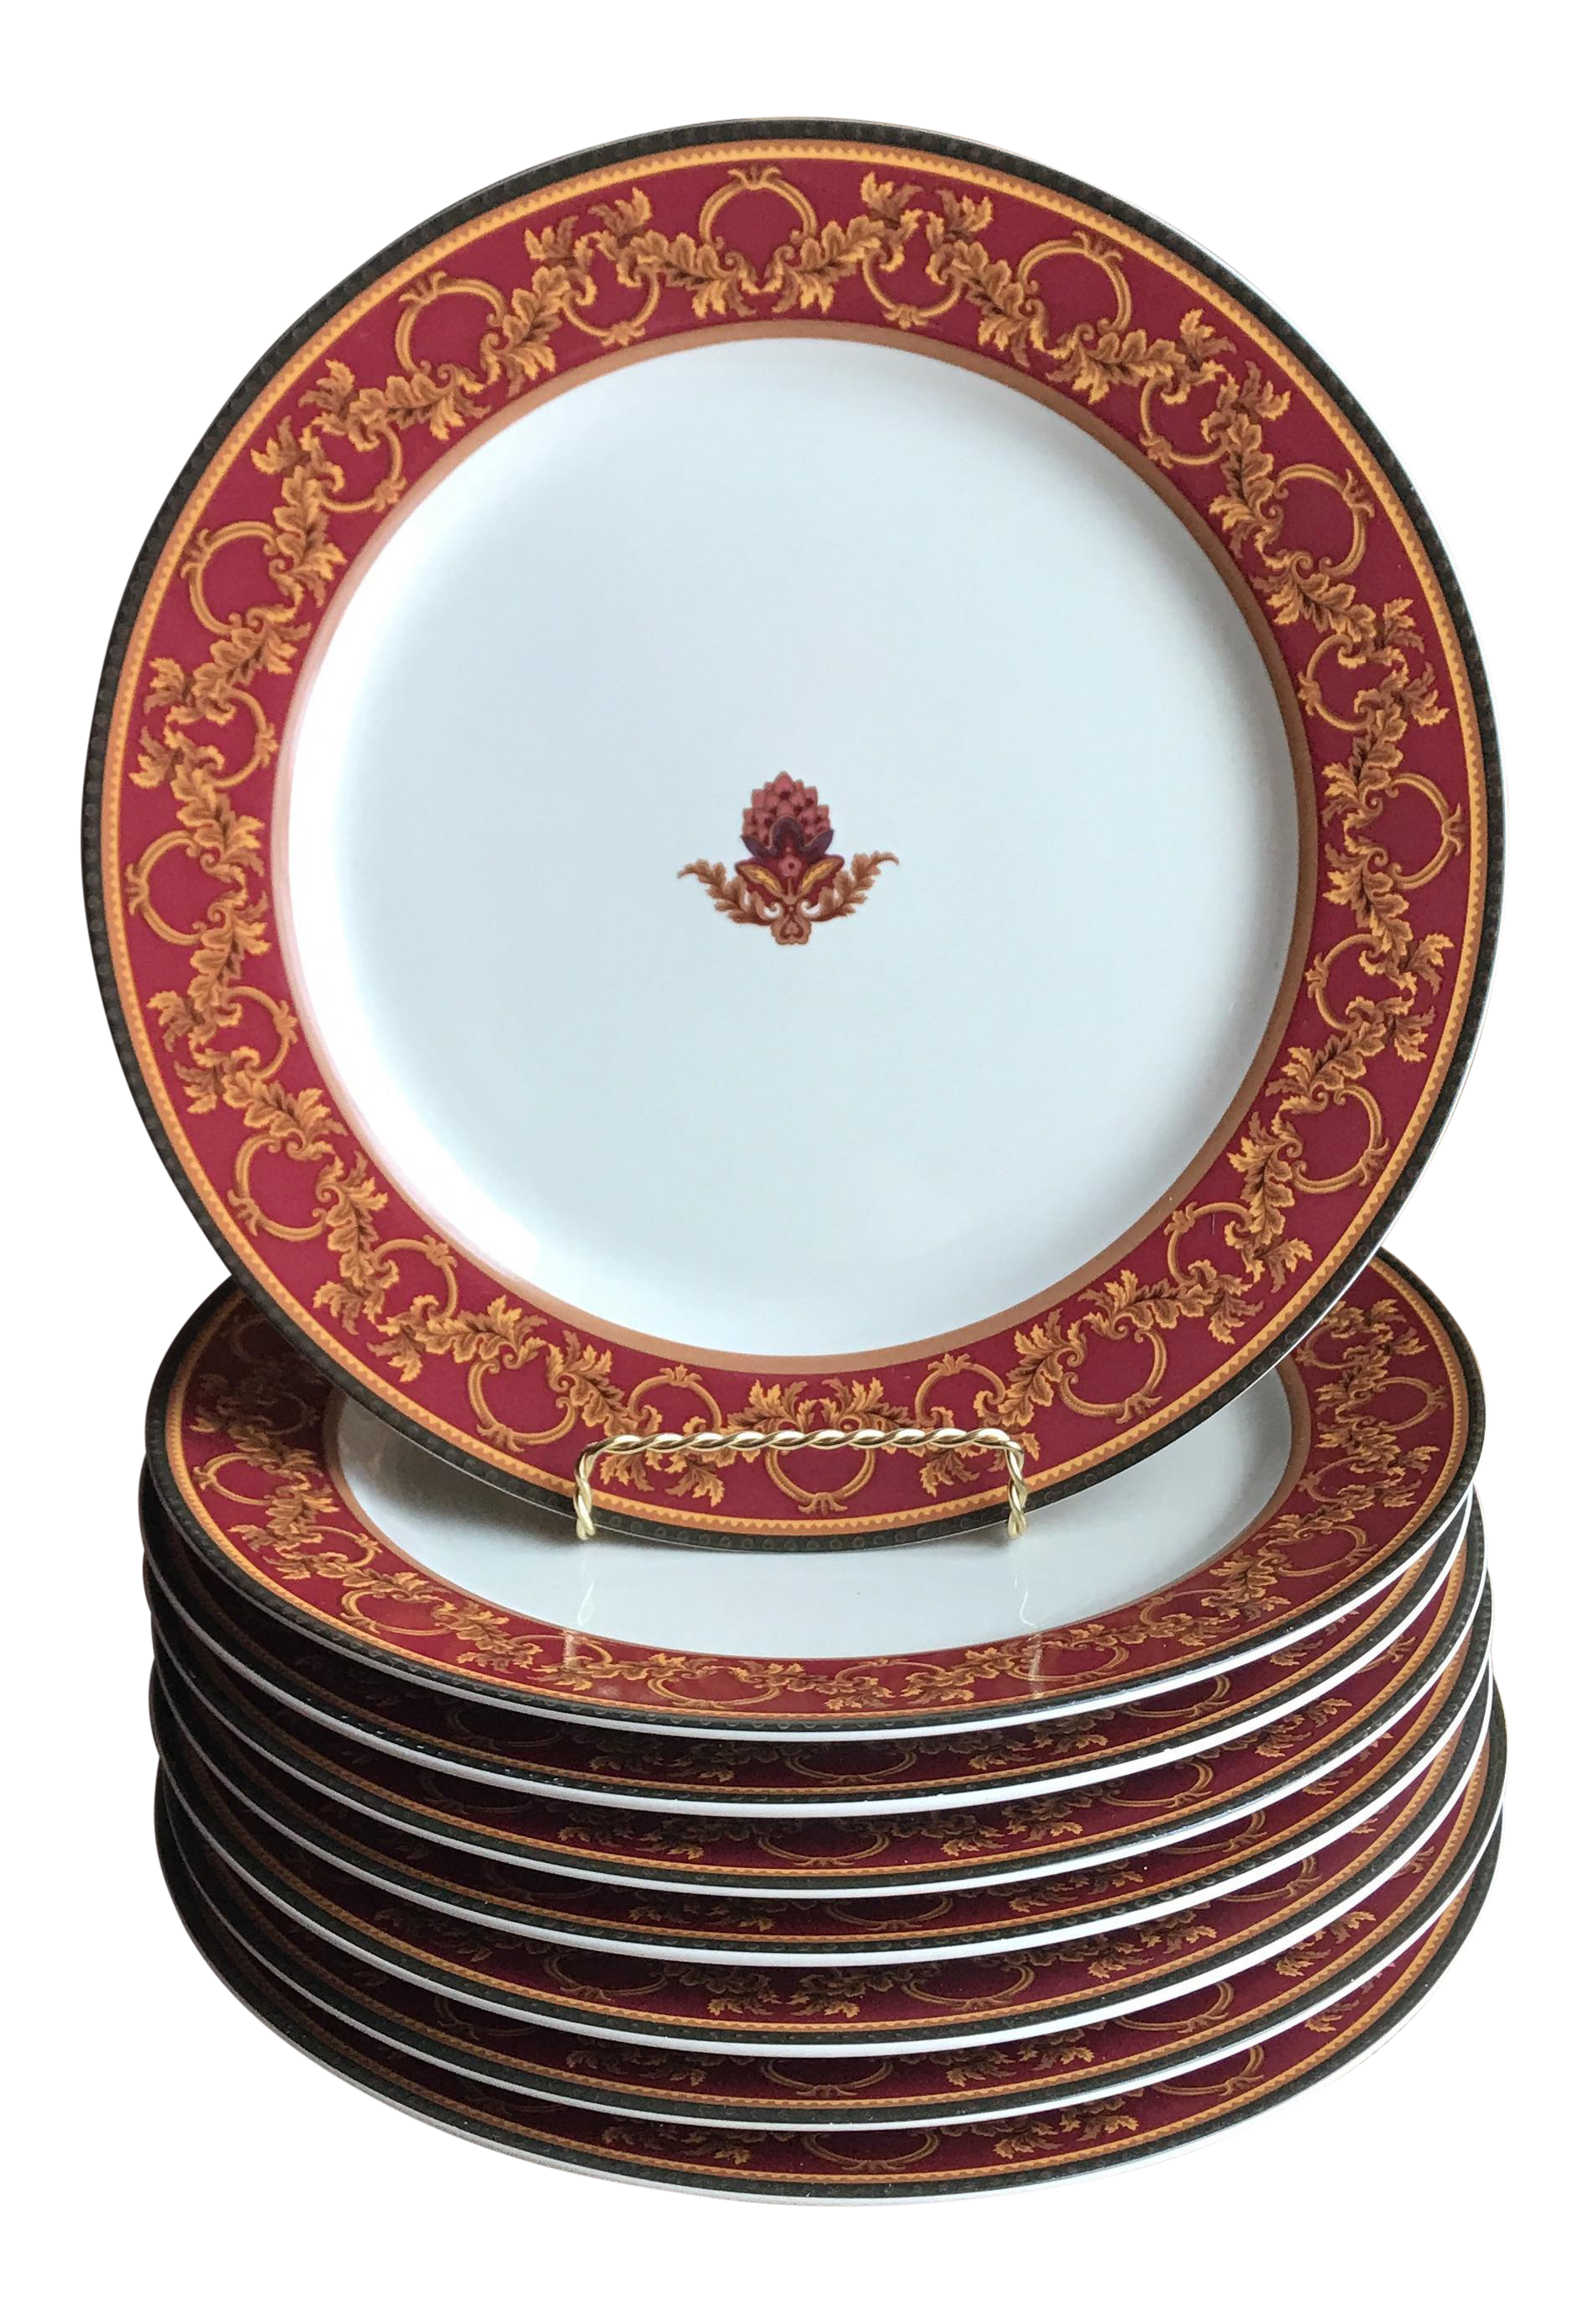 Raymond Waites  Ancient Kingdom  Dinner Plates - Set of 8  sc 1 st  Chairish & Raymond Waites